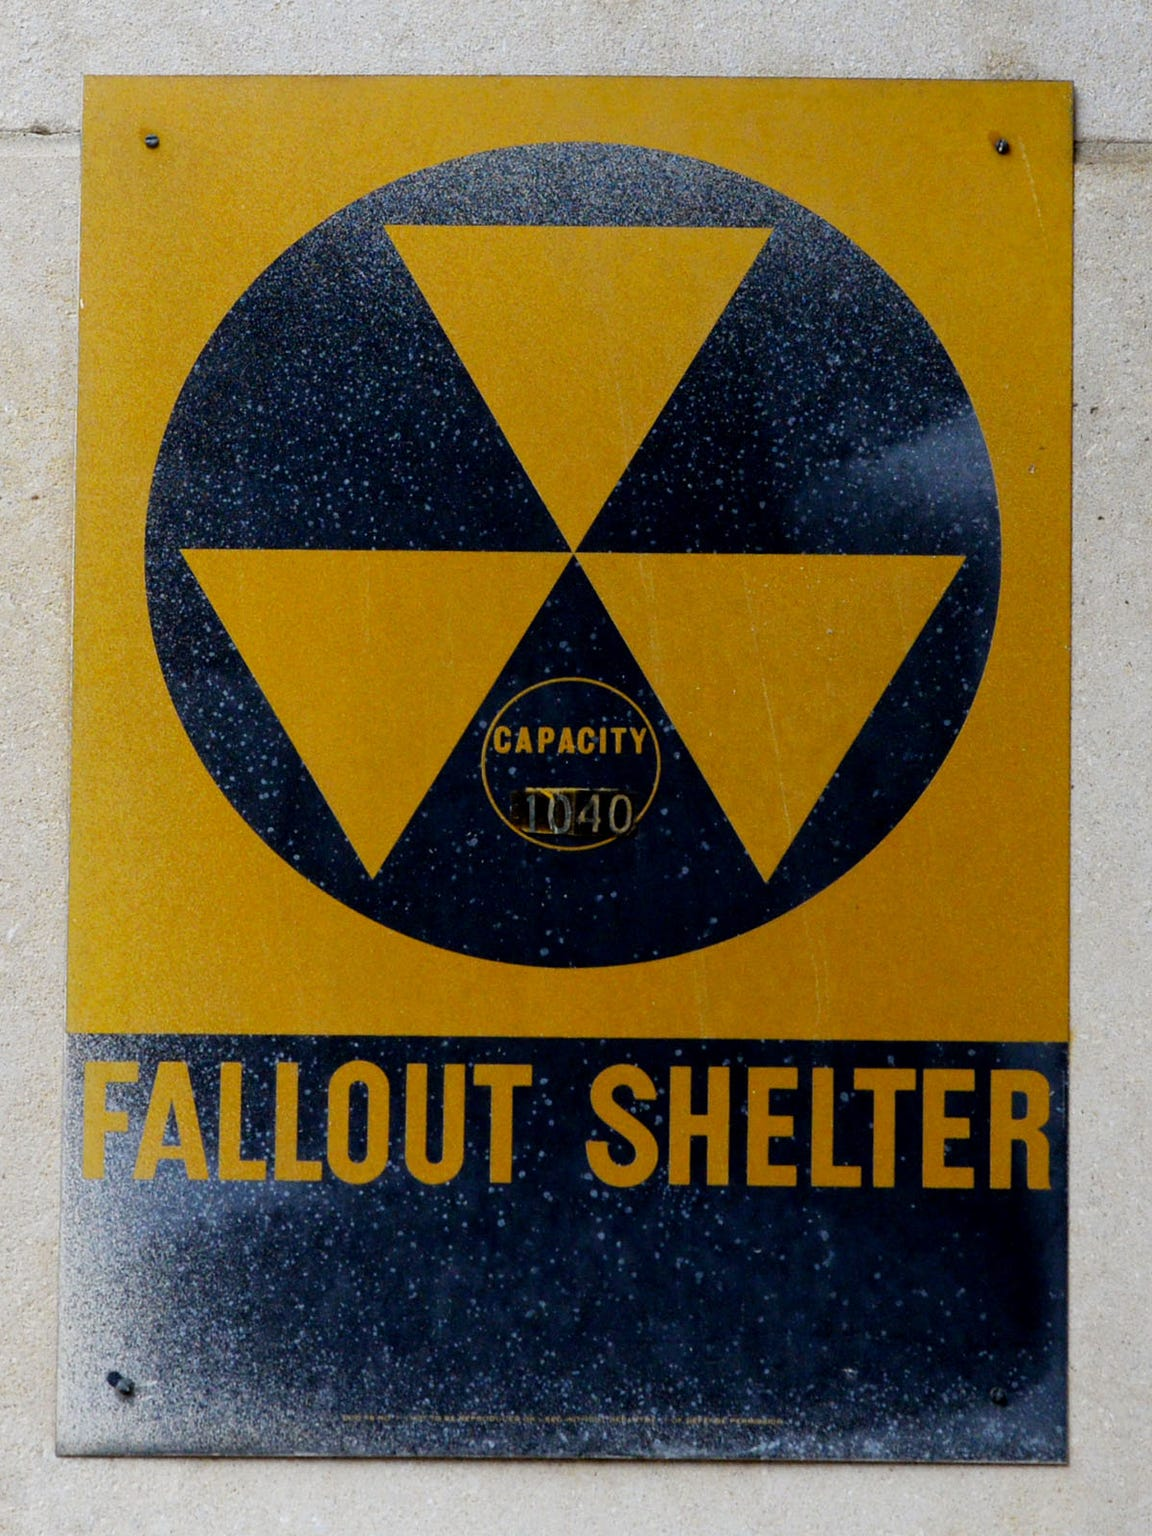 Robert W. Blakeley designed the yellow and black Fall Out Shelter sign that was used in the United States. This one still hangs on Bossier Elementary School.